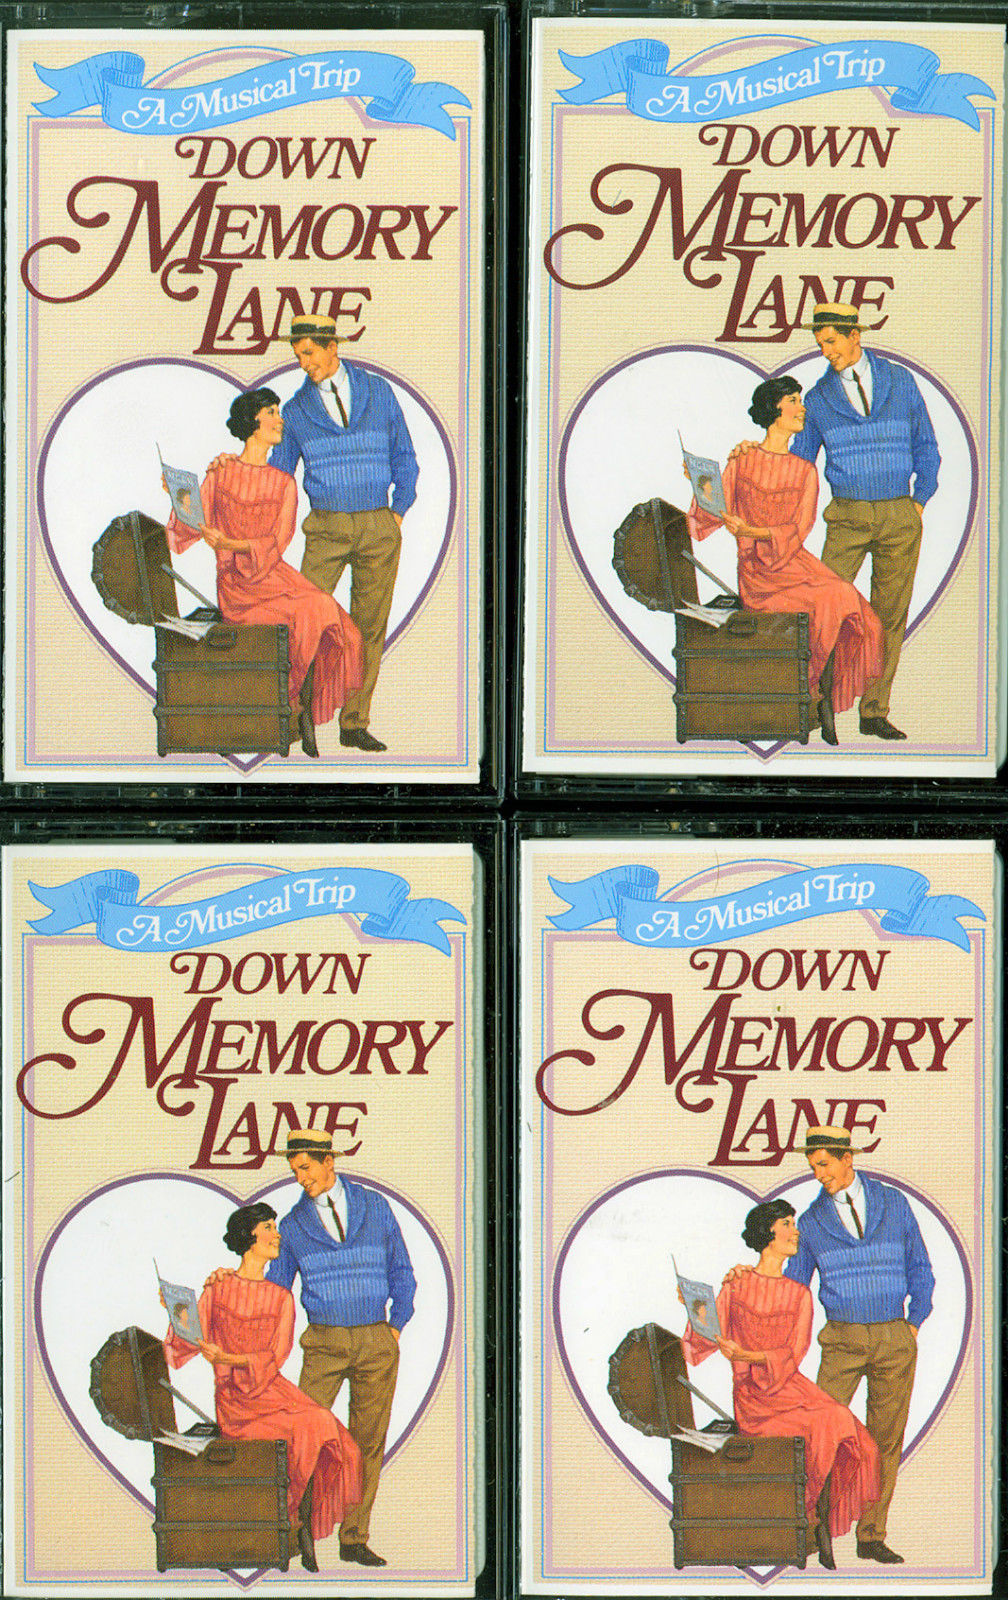 Readers Digest - 'A Memory Trip Down Memory Lane' - 4 Double Length Cassettes